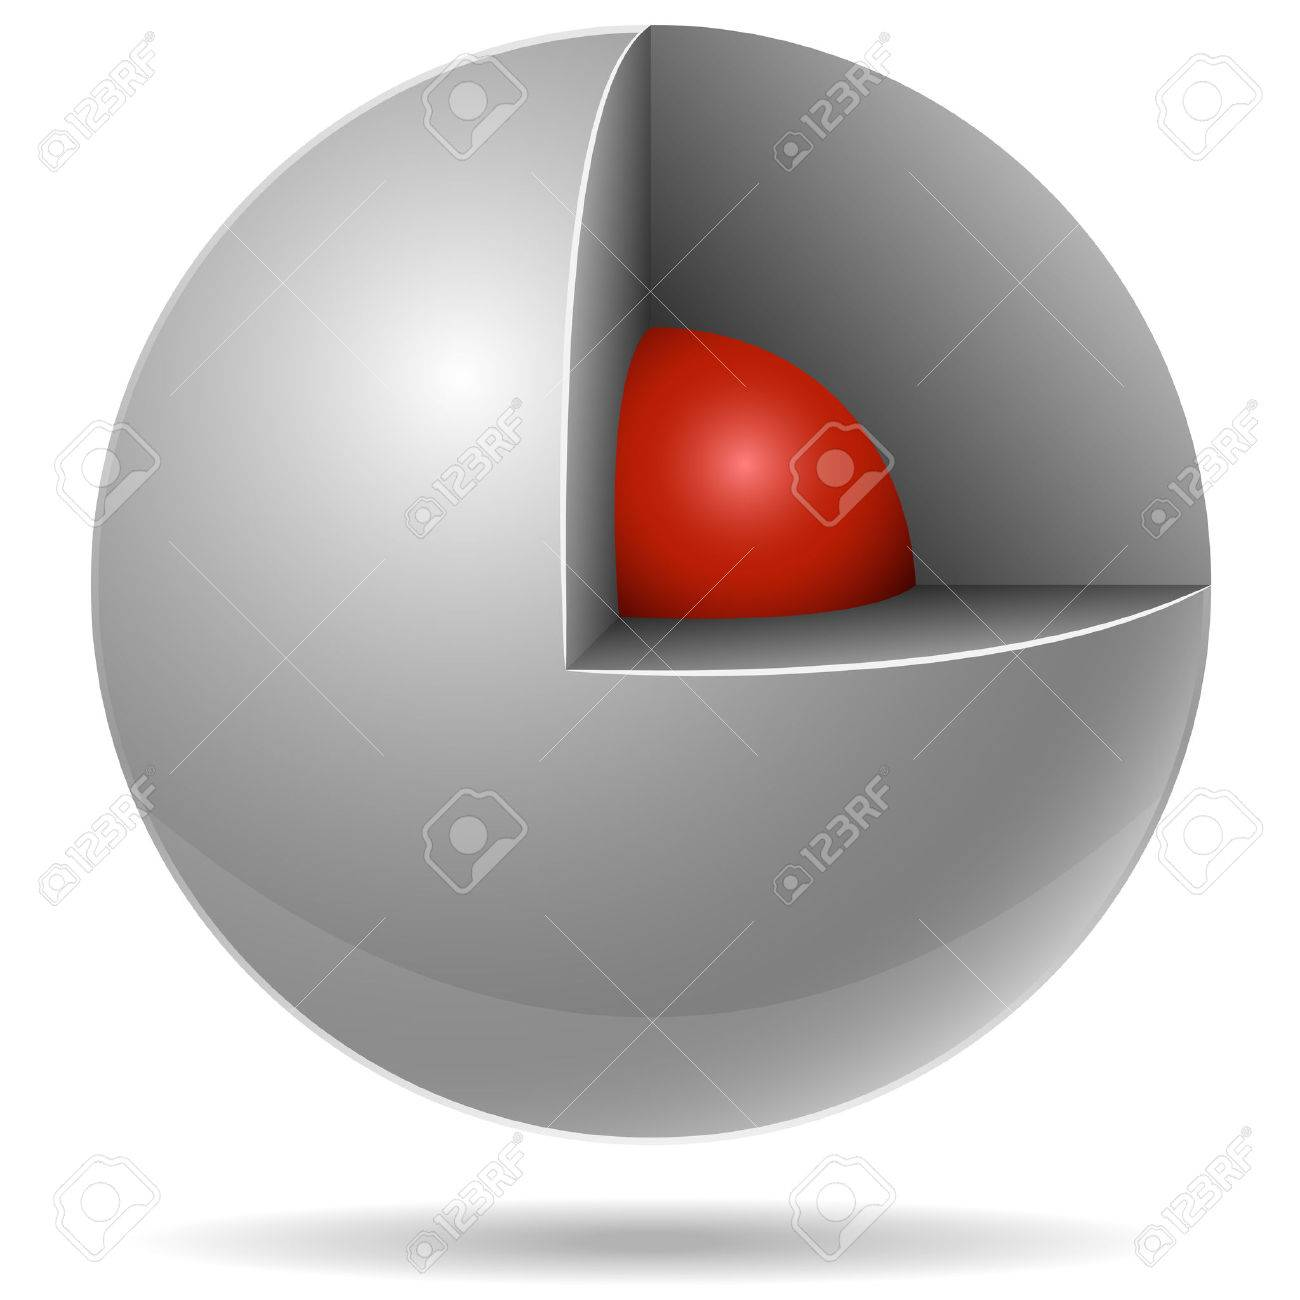 Cross section of white sphere with red one inside isolated on white background. Core concept. Stock Vector - 6126258